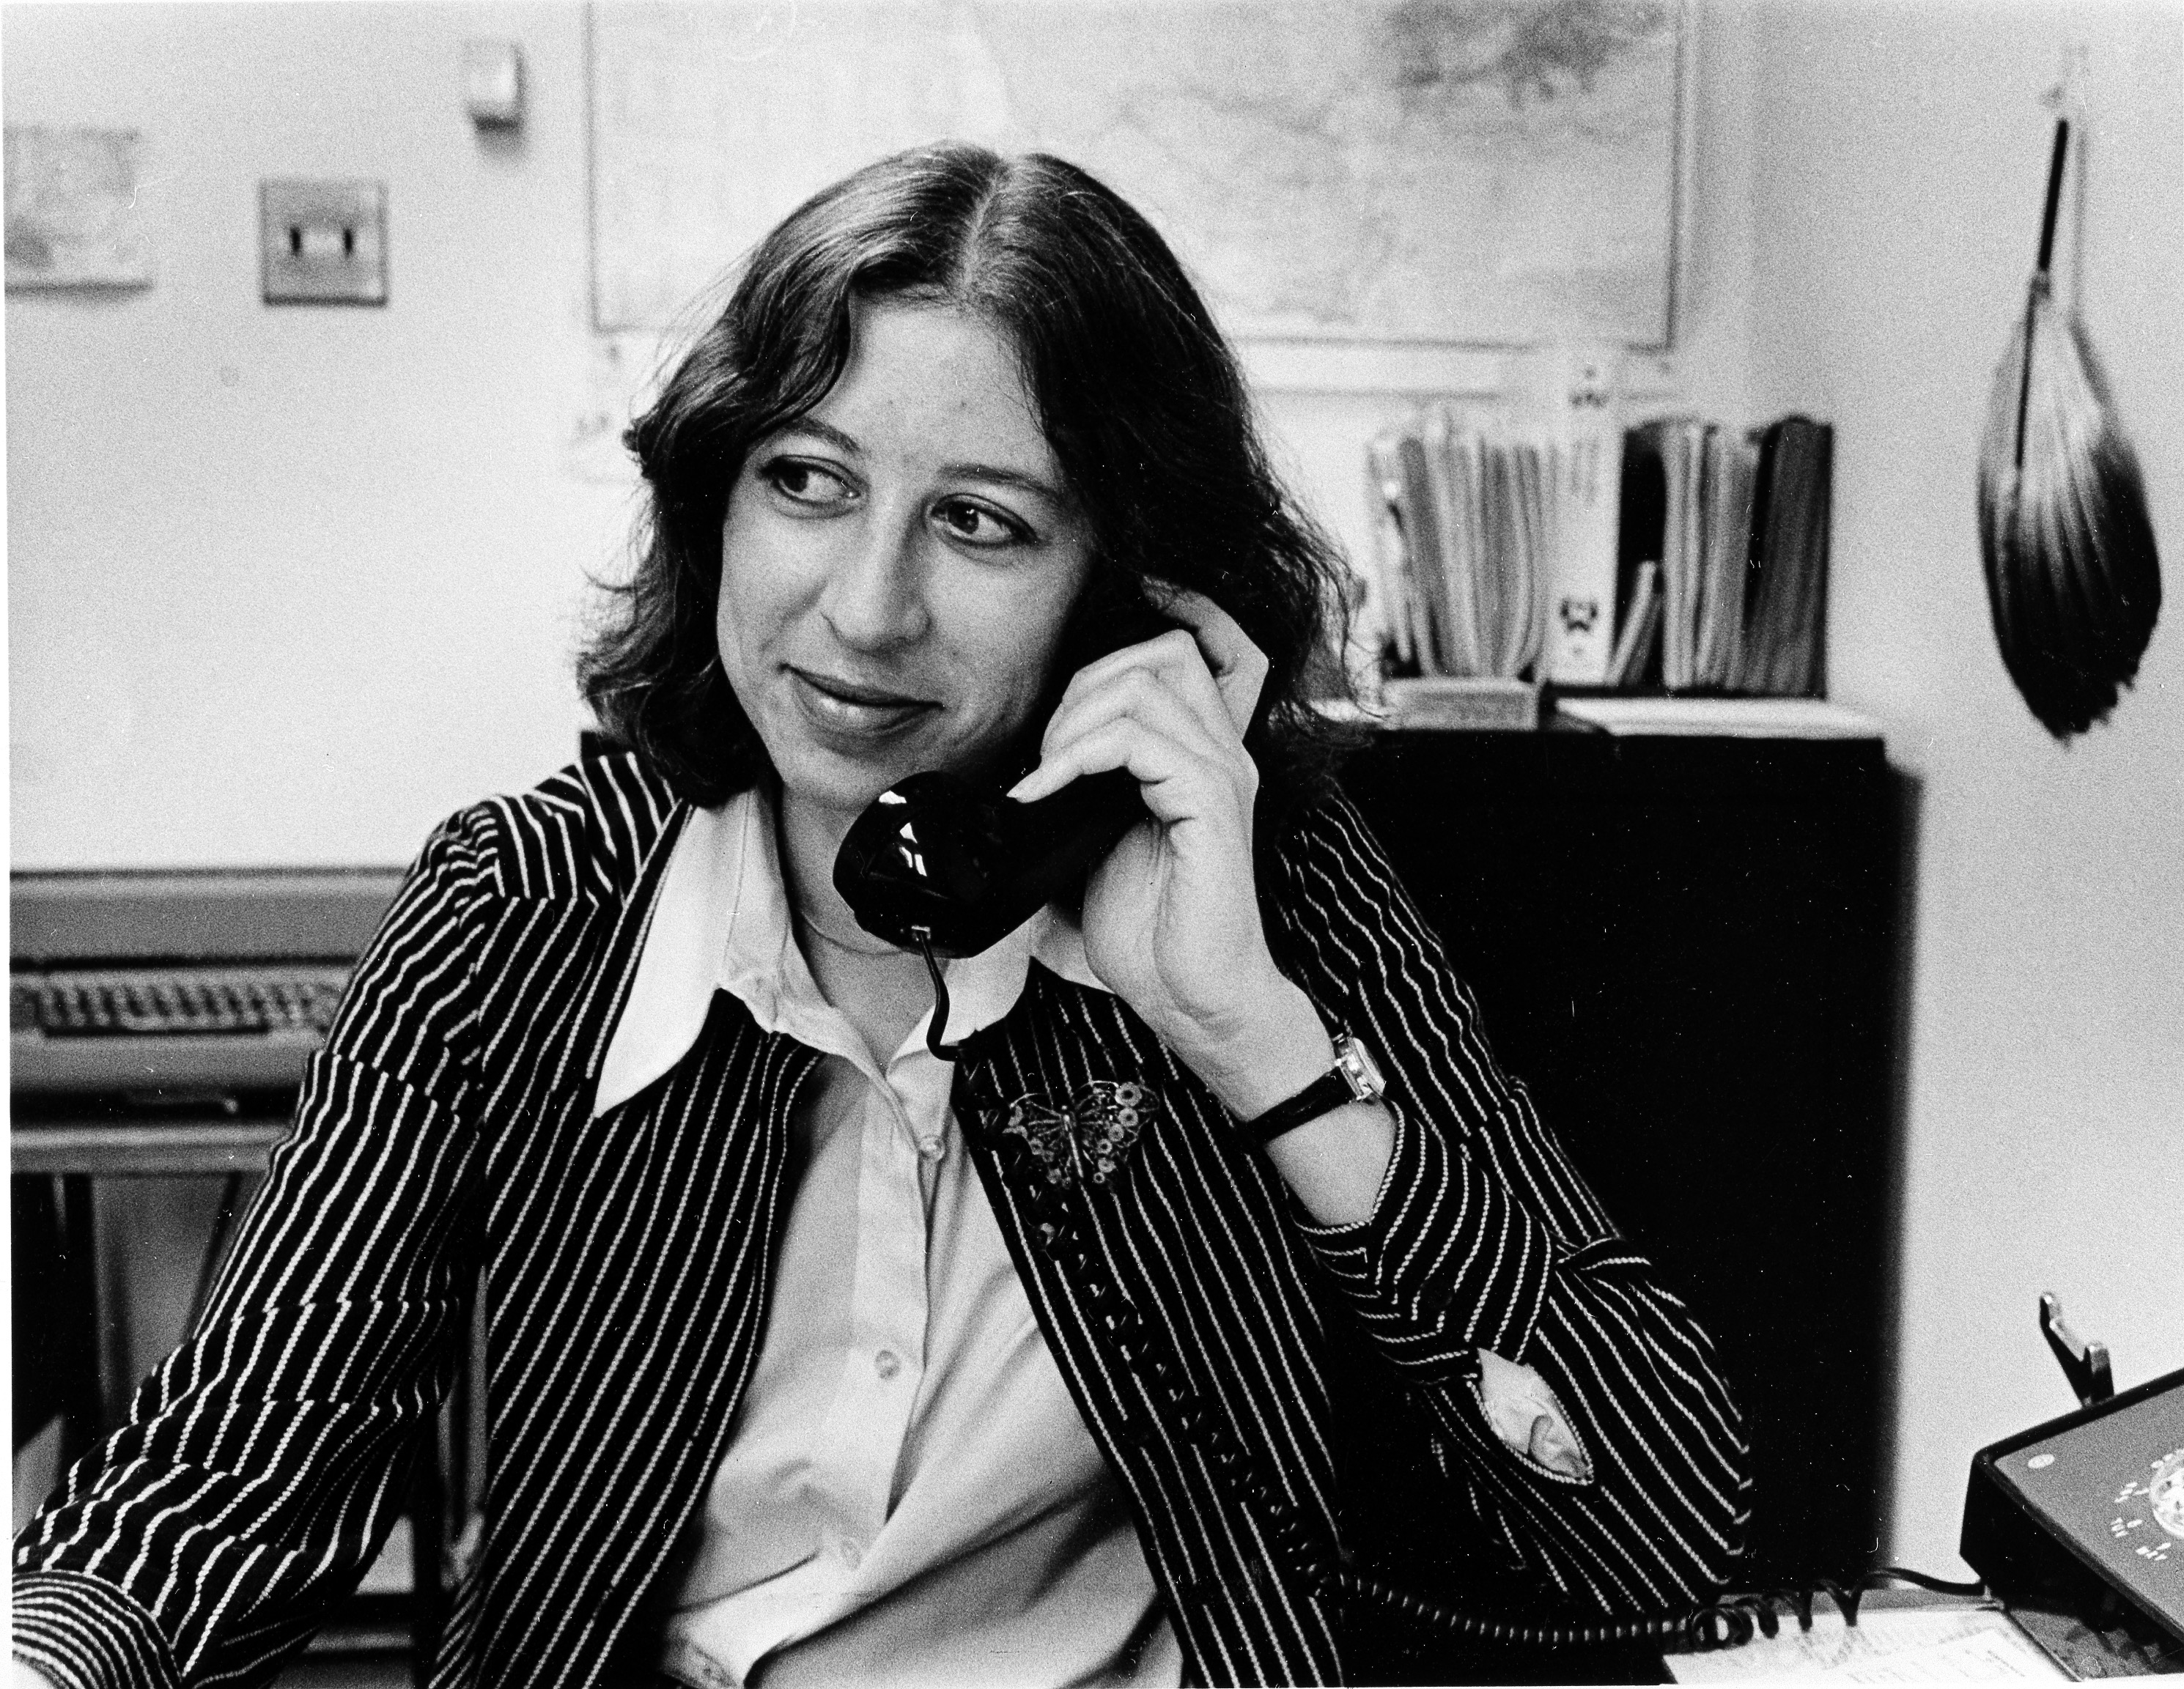 Black and white image of person seated and speaking on phone.